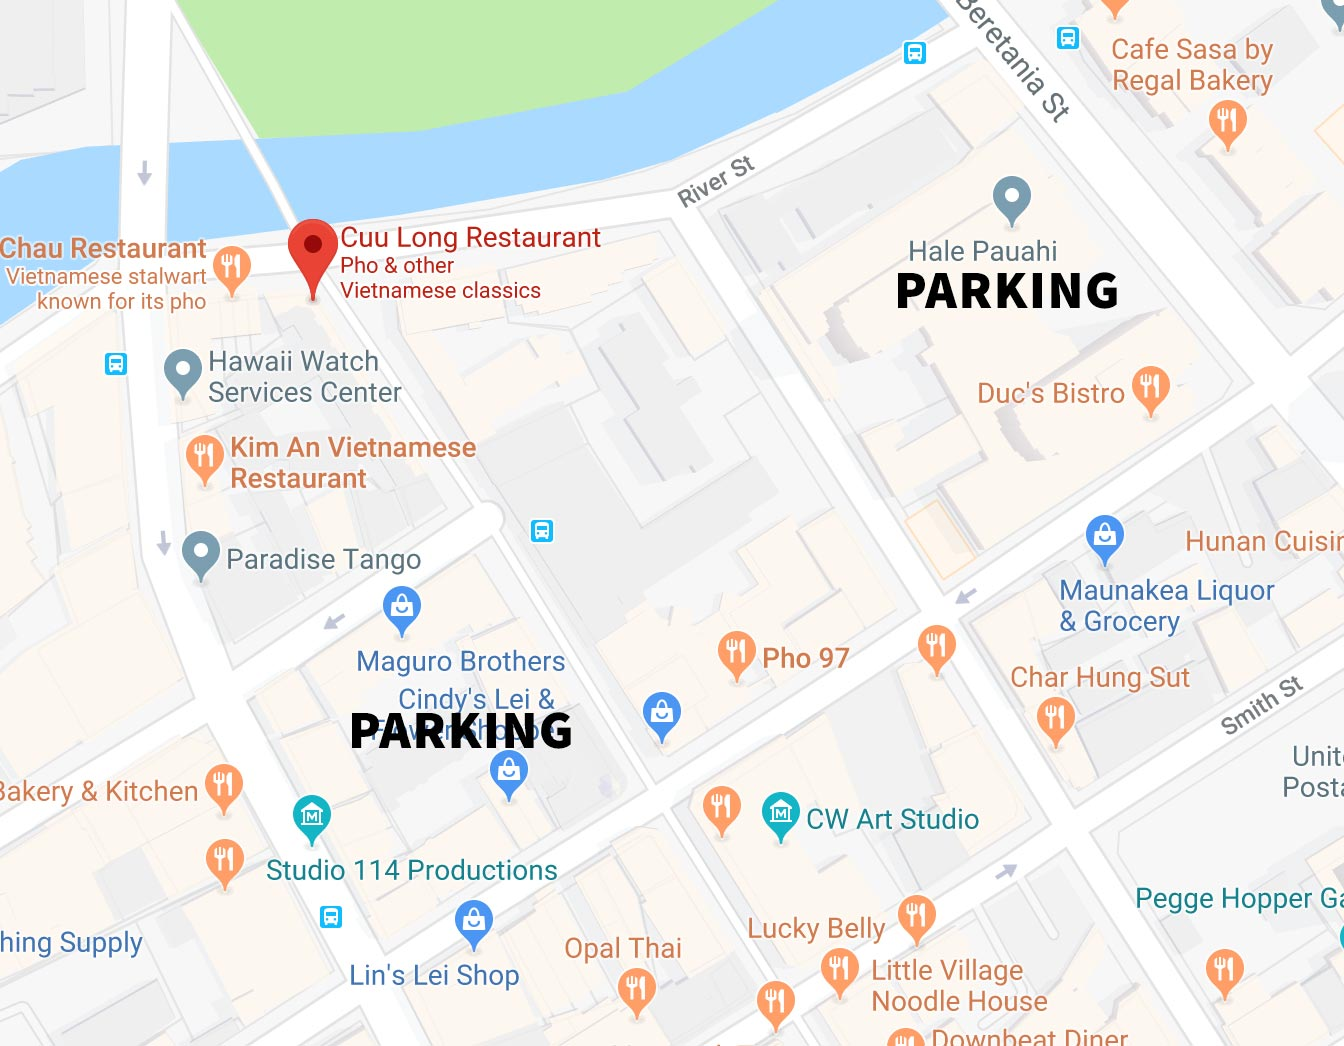 PARKING - We are located at the corner of Hotel and River Street.There are metered parking spaces available on River Street as well as municipal parking lots in the area:Hale Pauahi: Beretania Street between Maunakea and RiverHarbor Village: Nimitz Hwy. between River and Kekaulike (meters)Kekaulike Courtyard: Maunakea Street between Nimitz and King